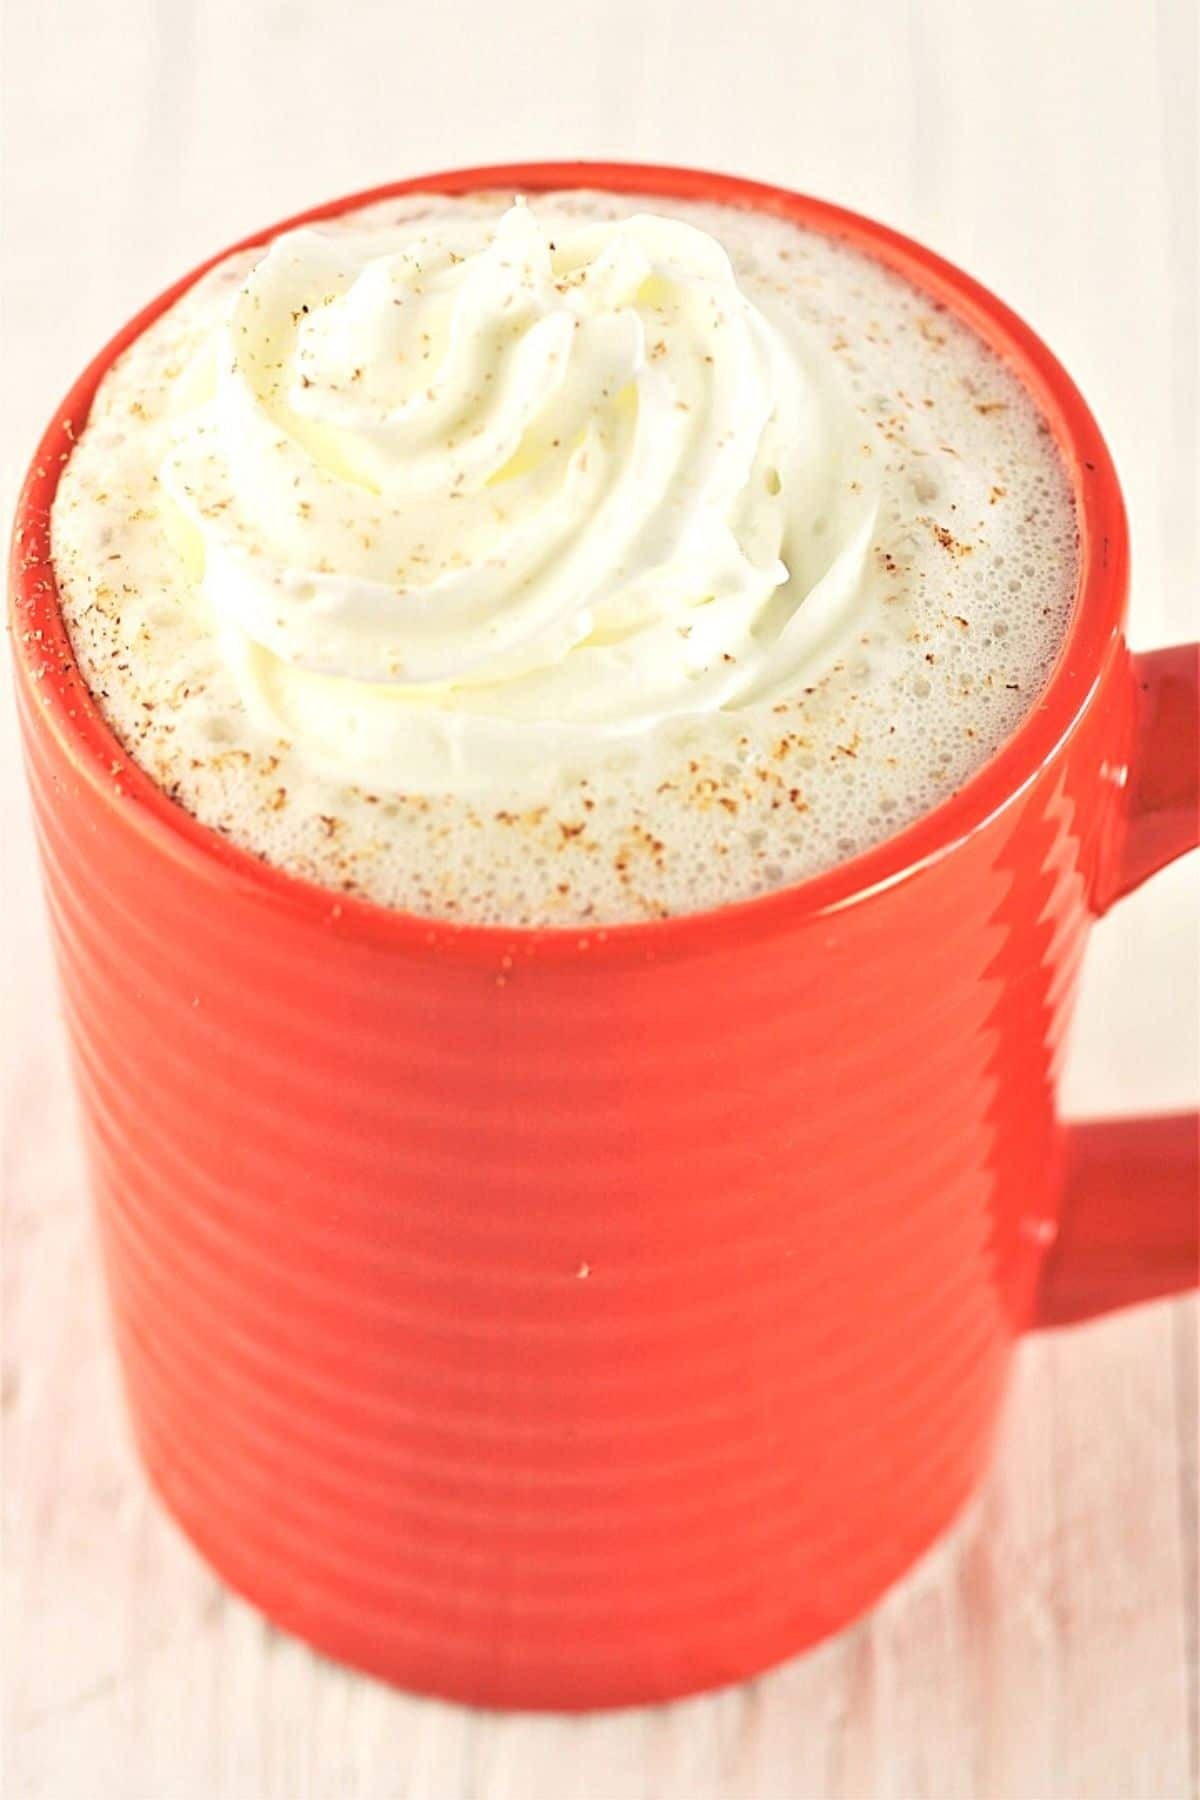 mug of warm vanilla milk bedtime drink with whipped cream on top